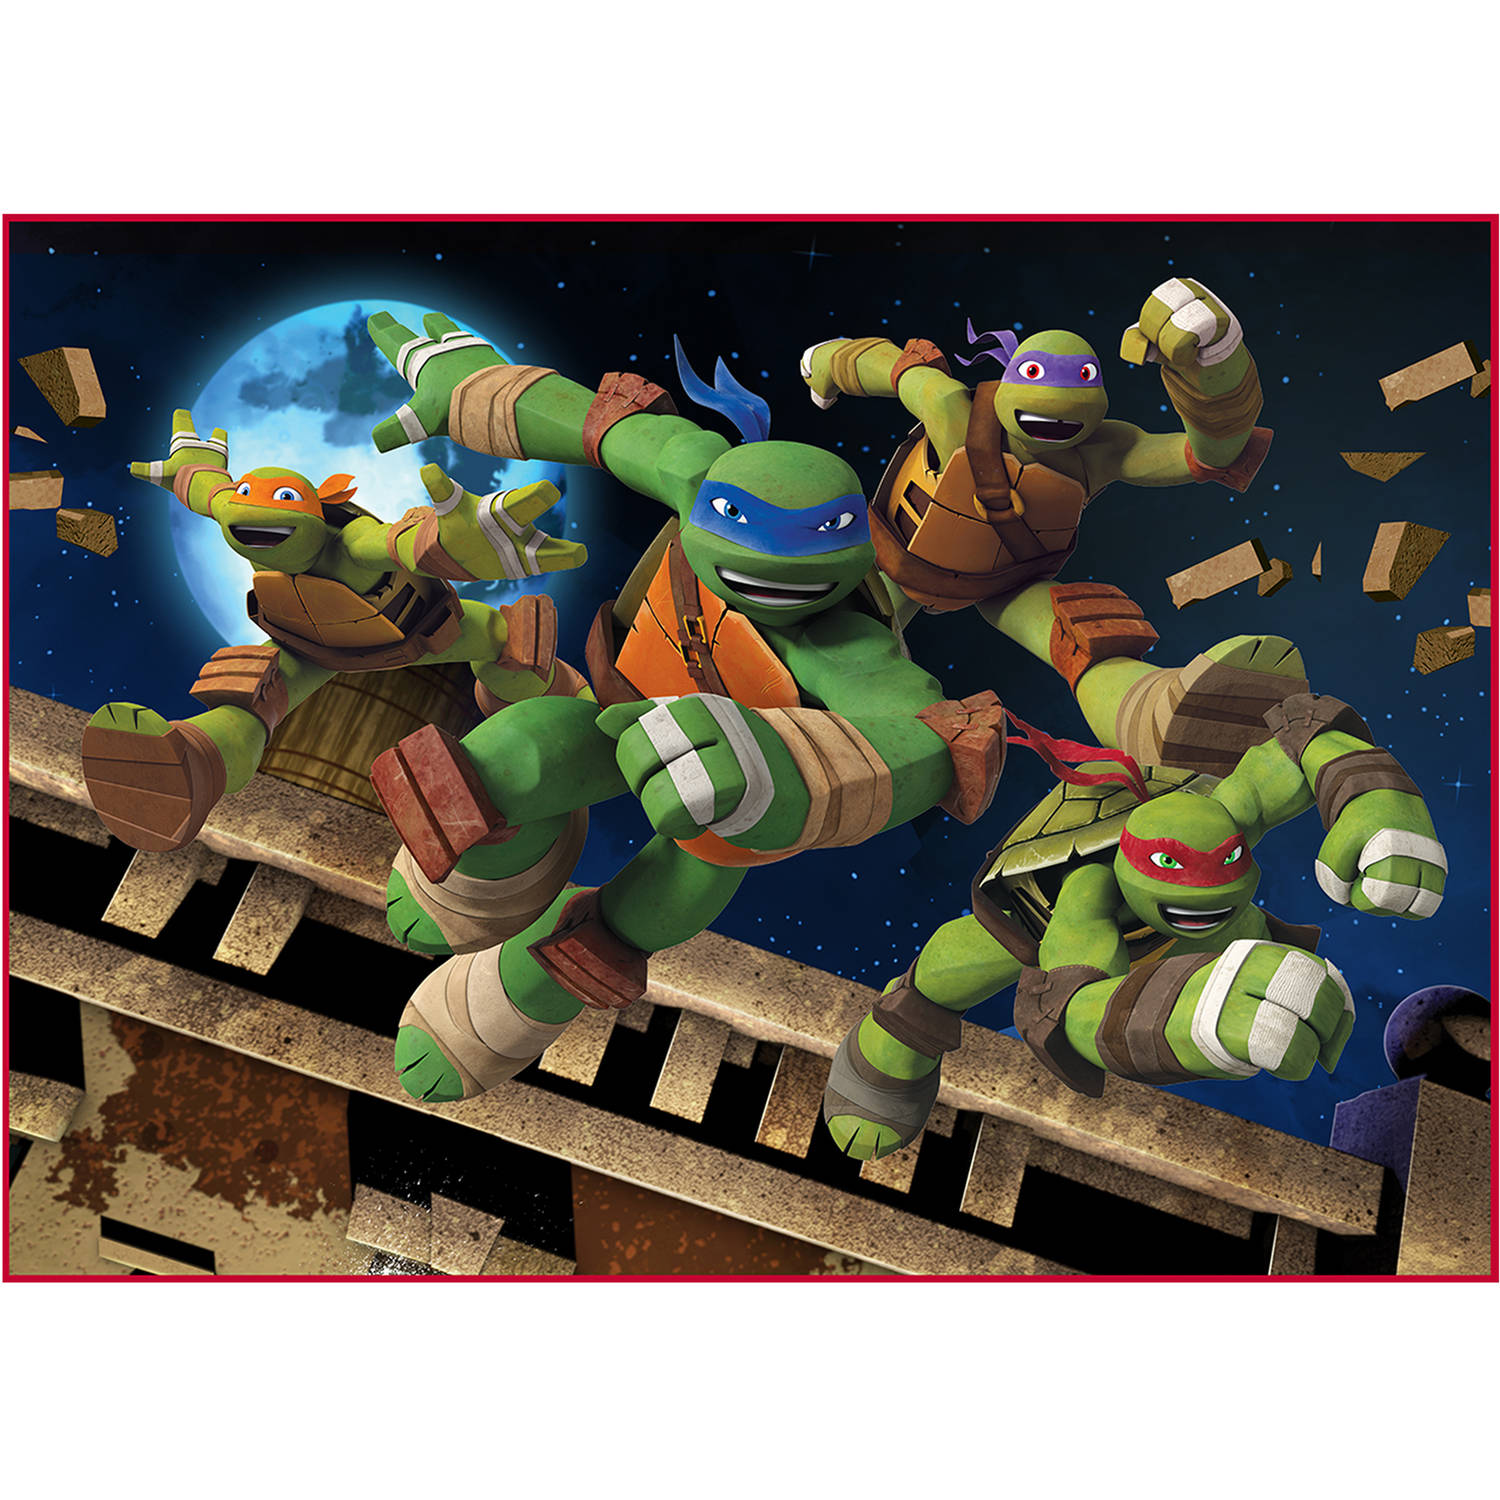 "Ninja Turtles ""We are Ninjas"" 40"" x 56"" Accent Rug"